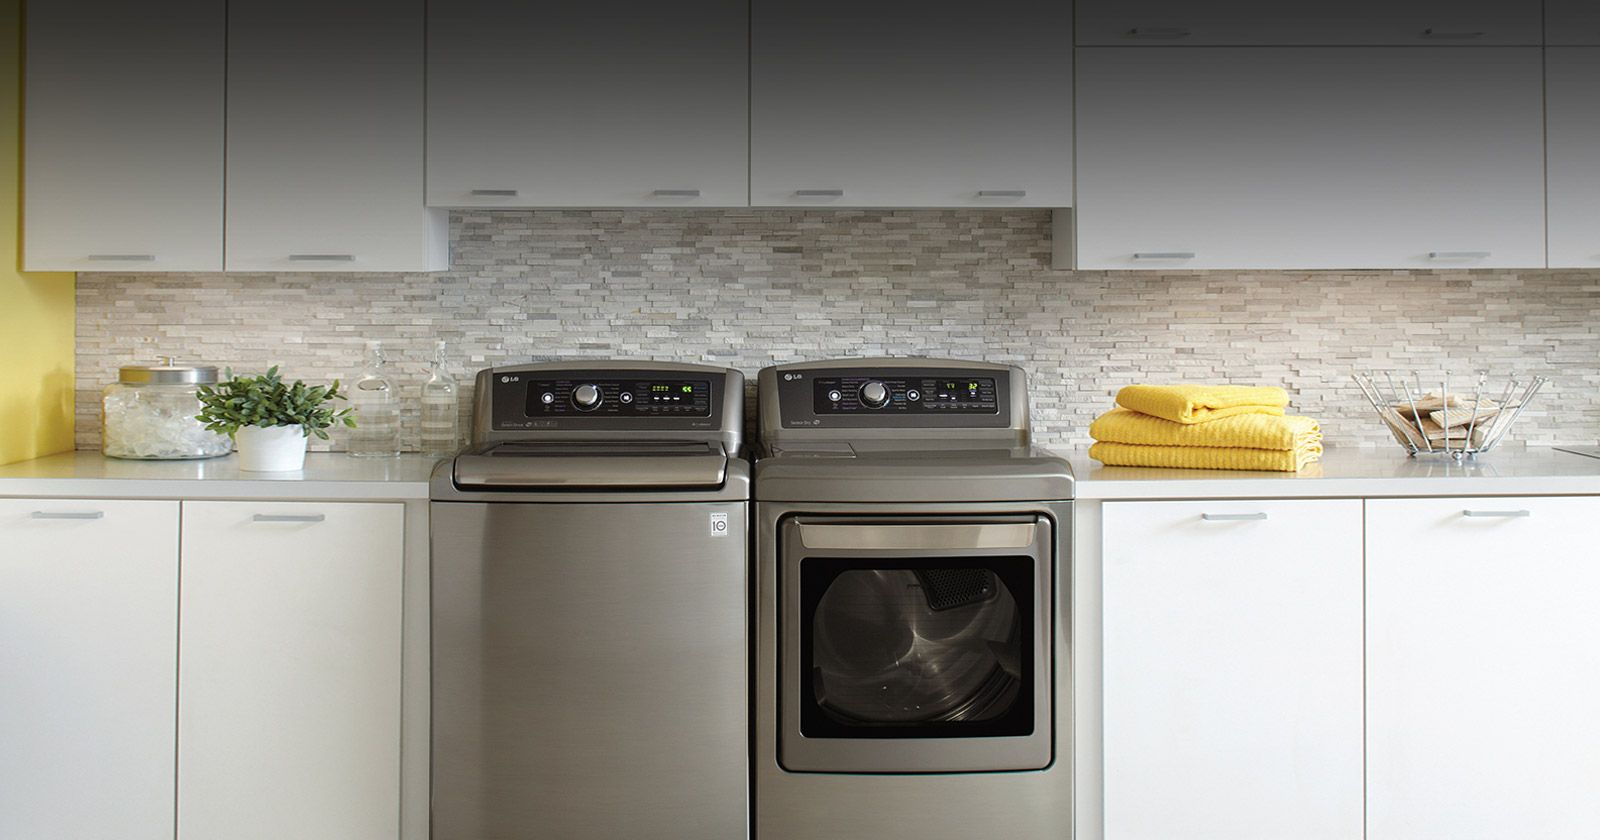 Picture showing a laundry room and a